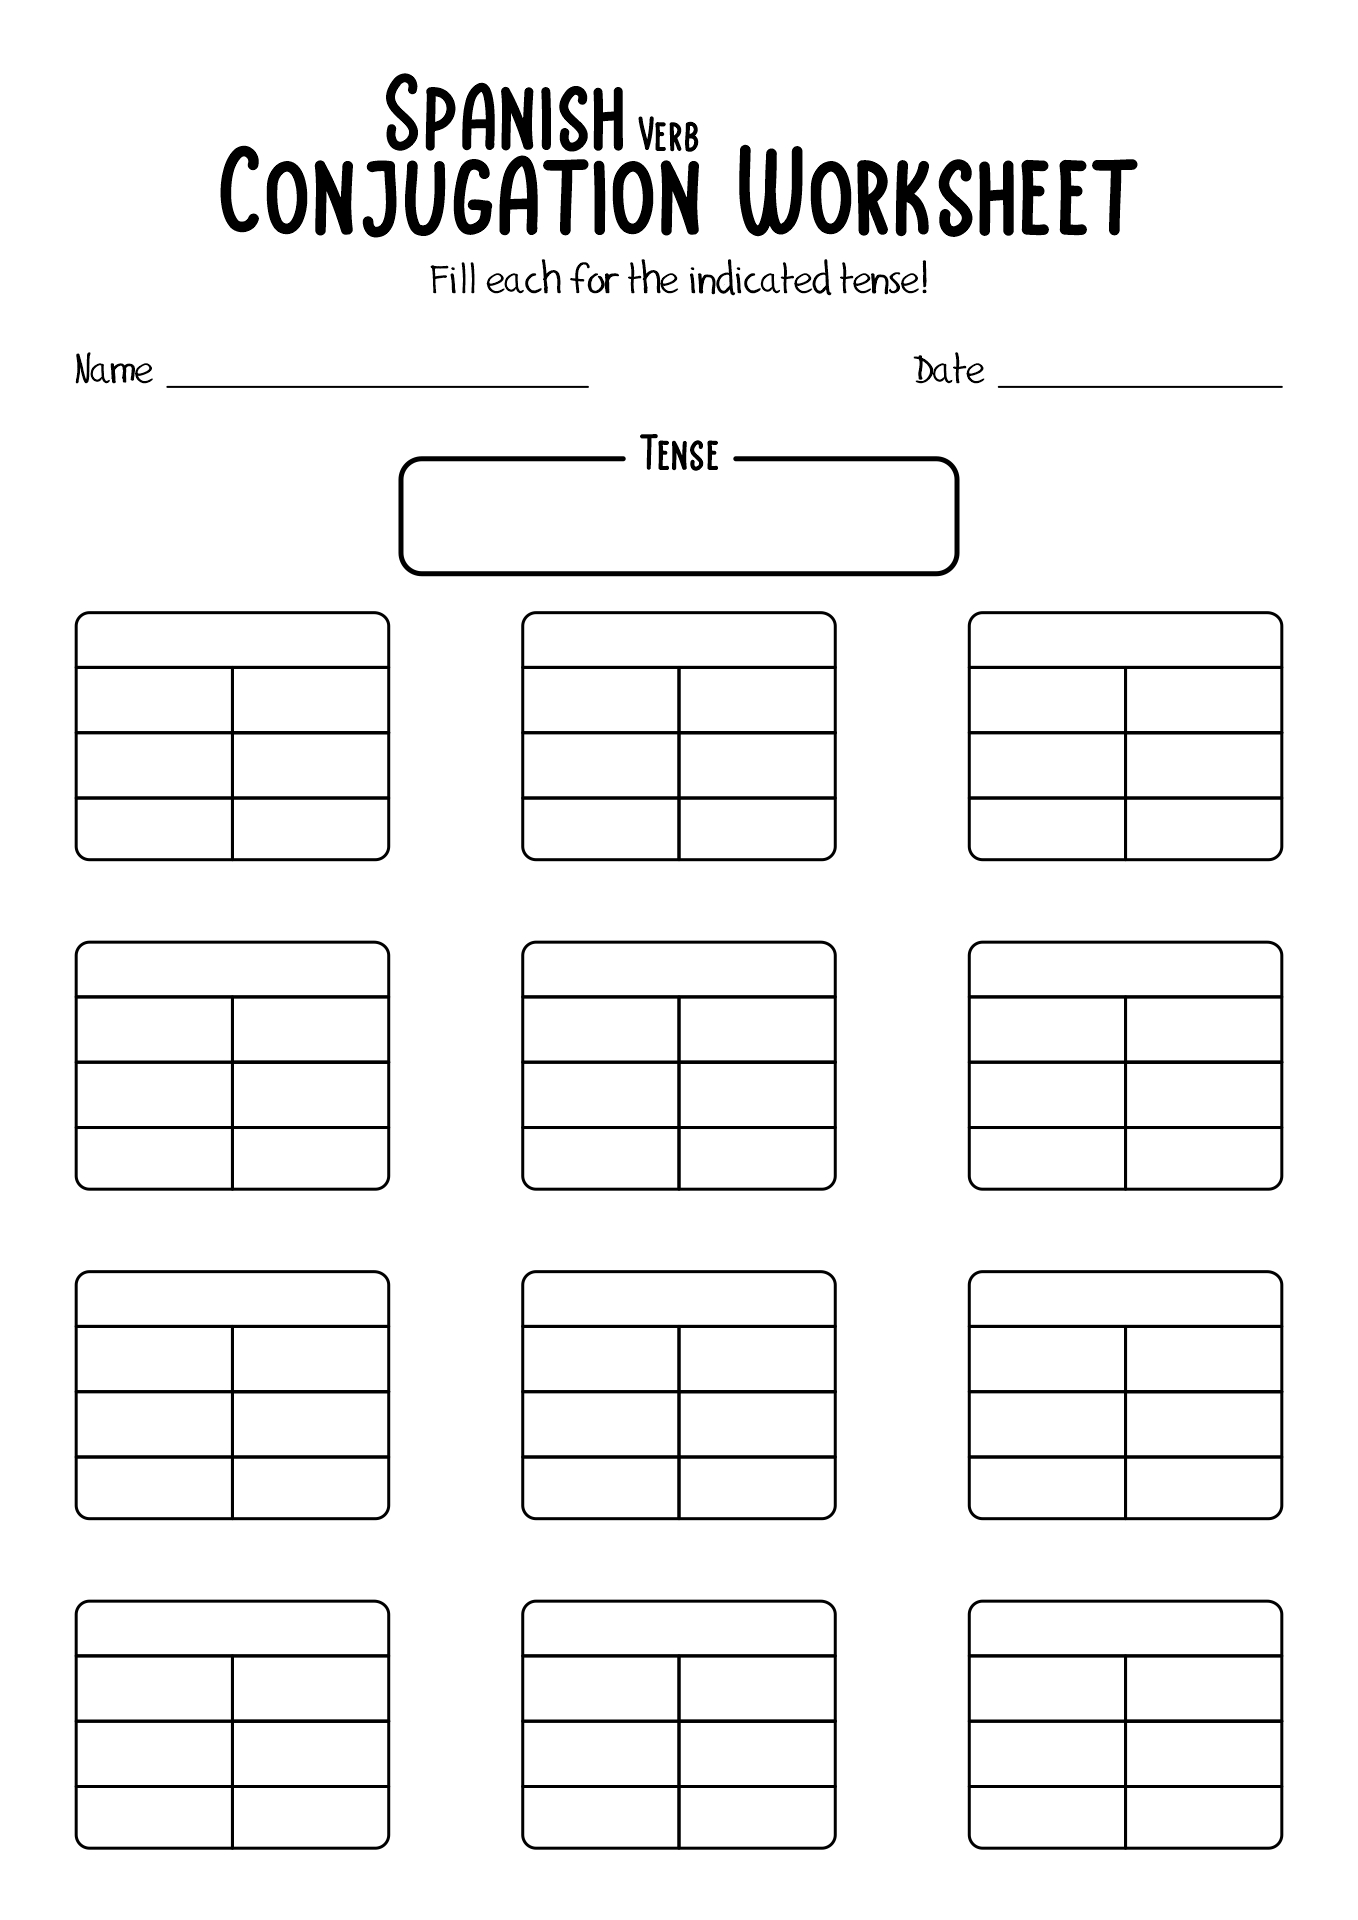 18 Best Images Of Spanish Verb Worksheets